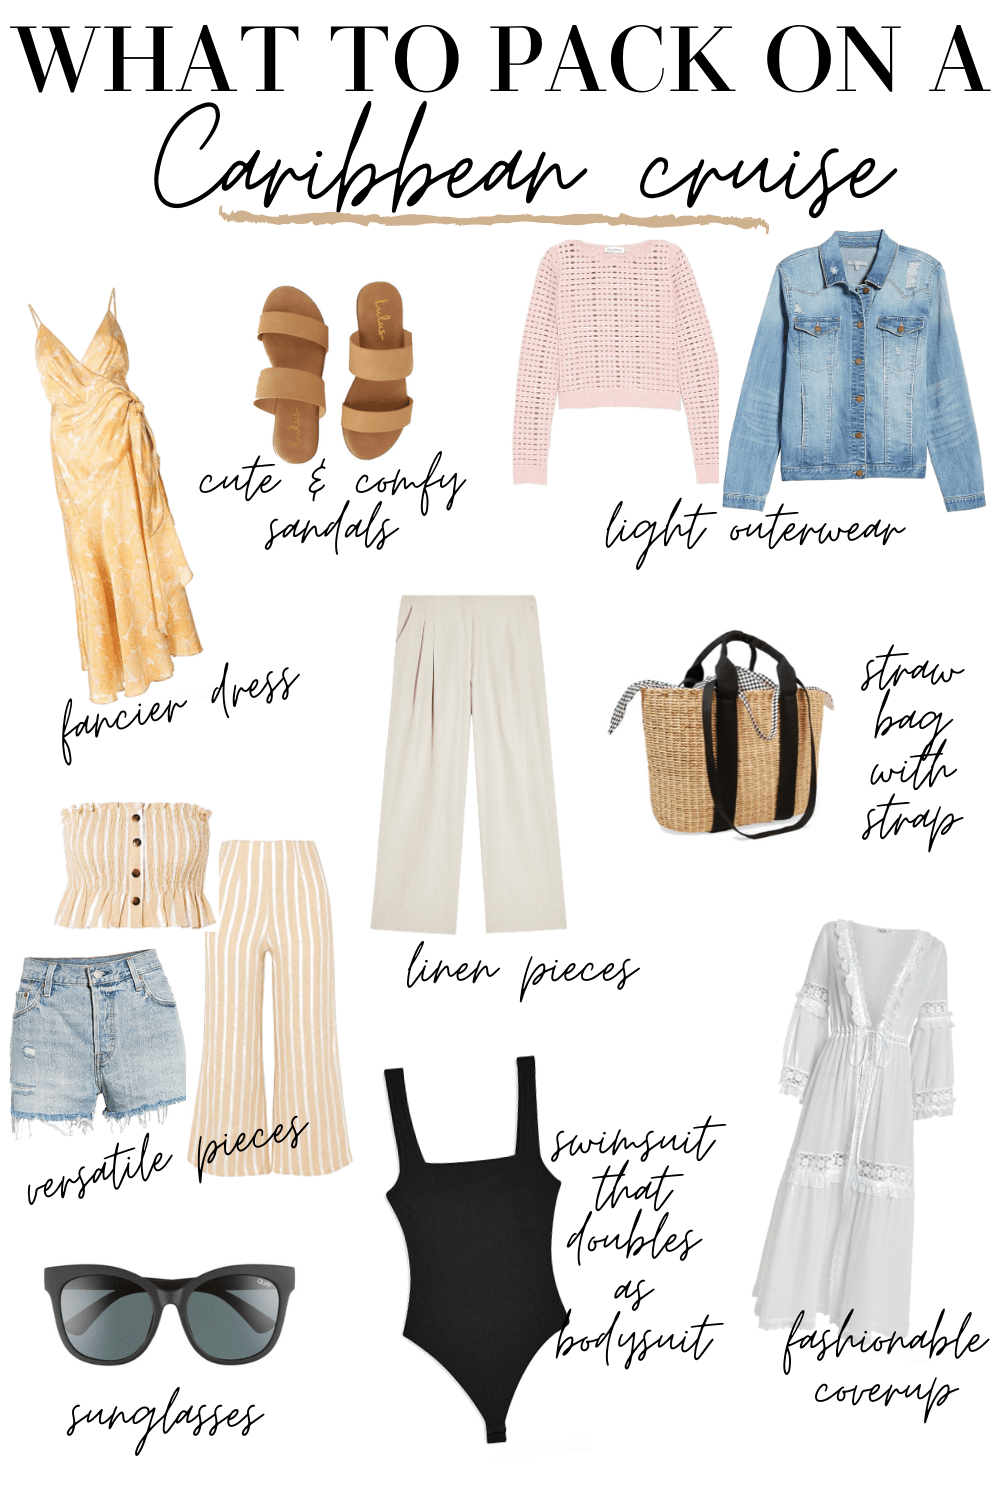 Cruise Outfits | What to Pack for a Caribbean Cruise - MY CHIC OBSESSION